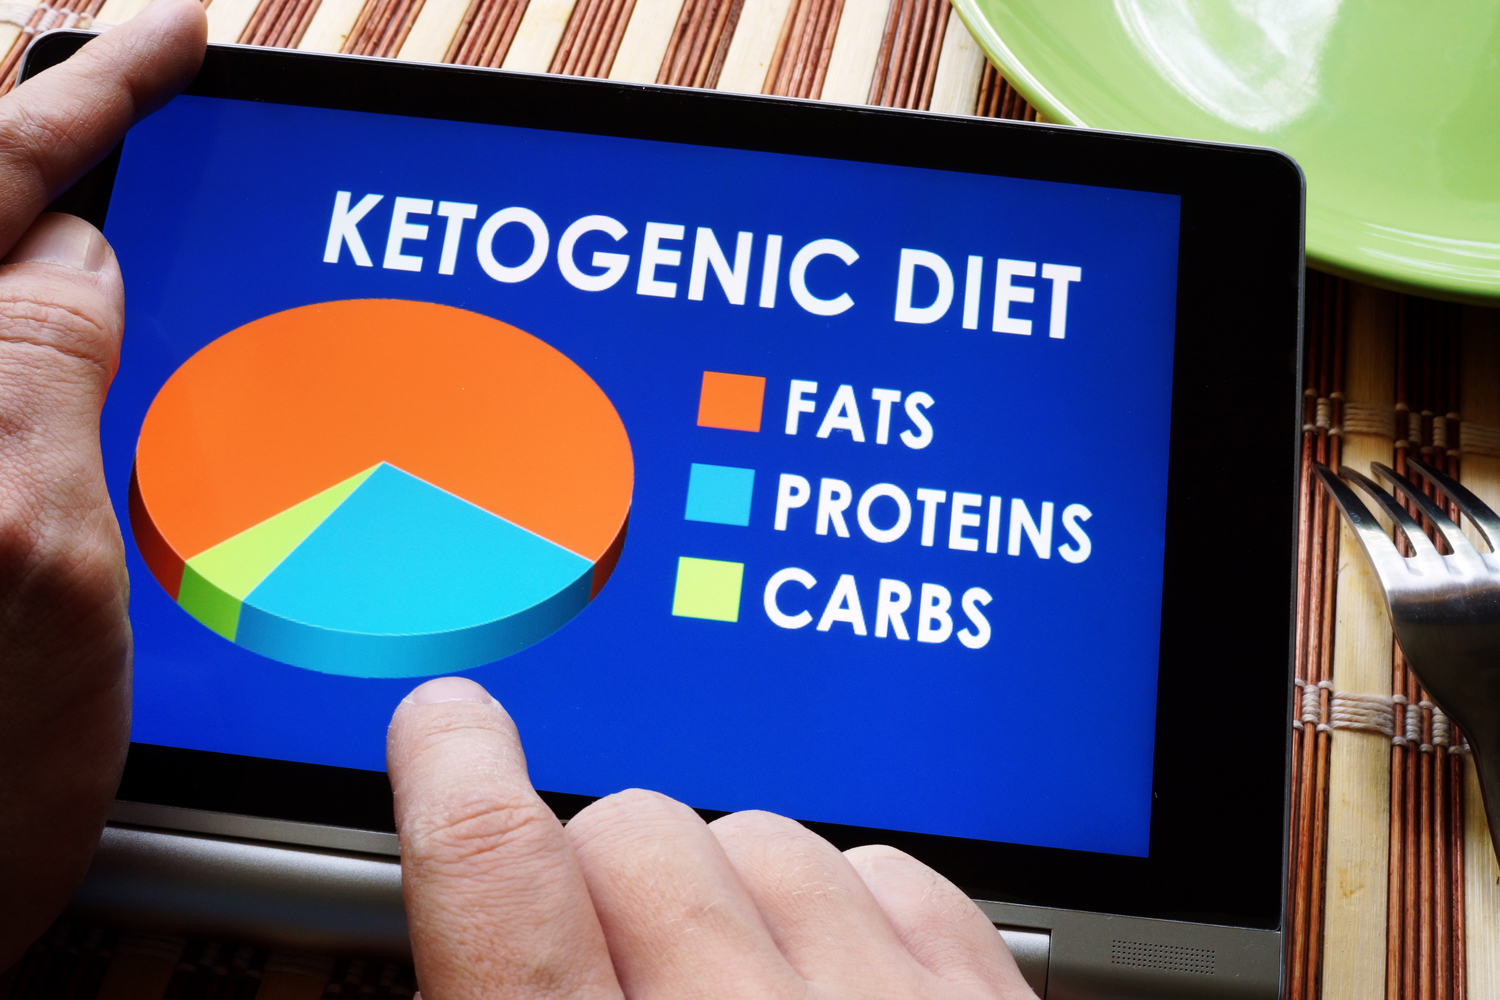 Keto Ketogenic Diet Foods Facts Fats Proteins Carbohydrates Carbs